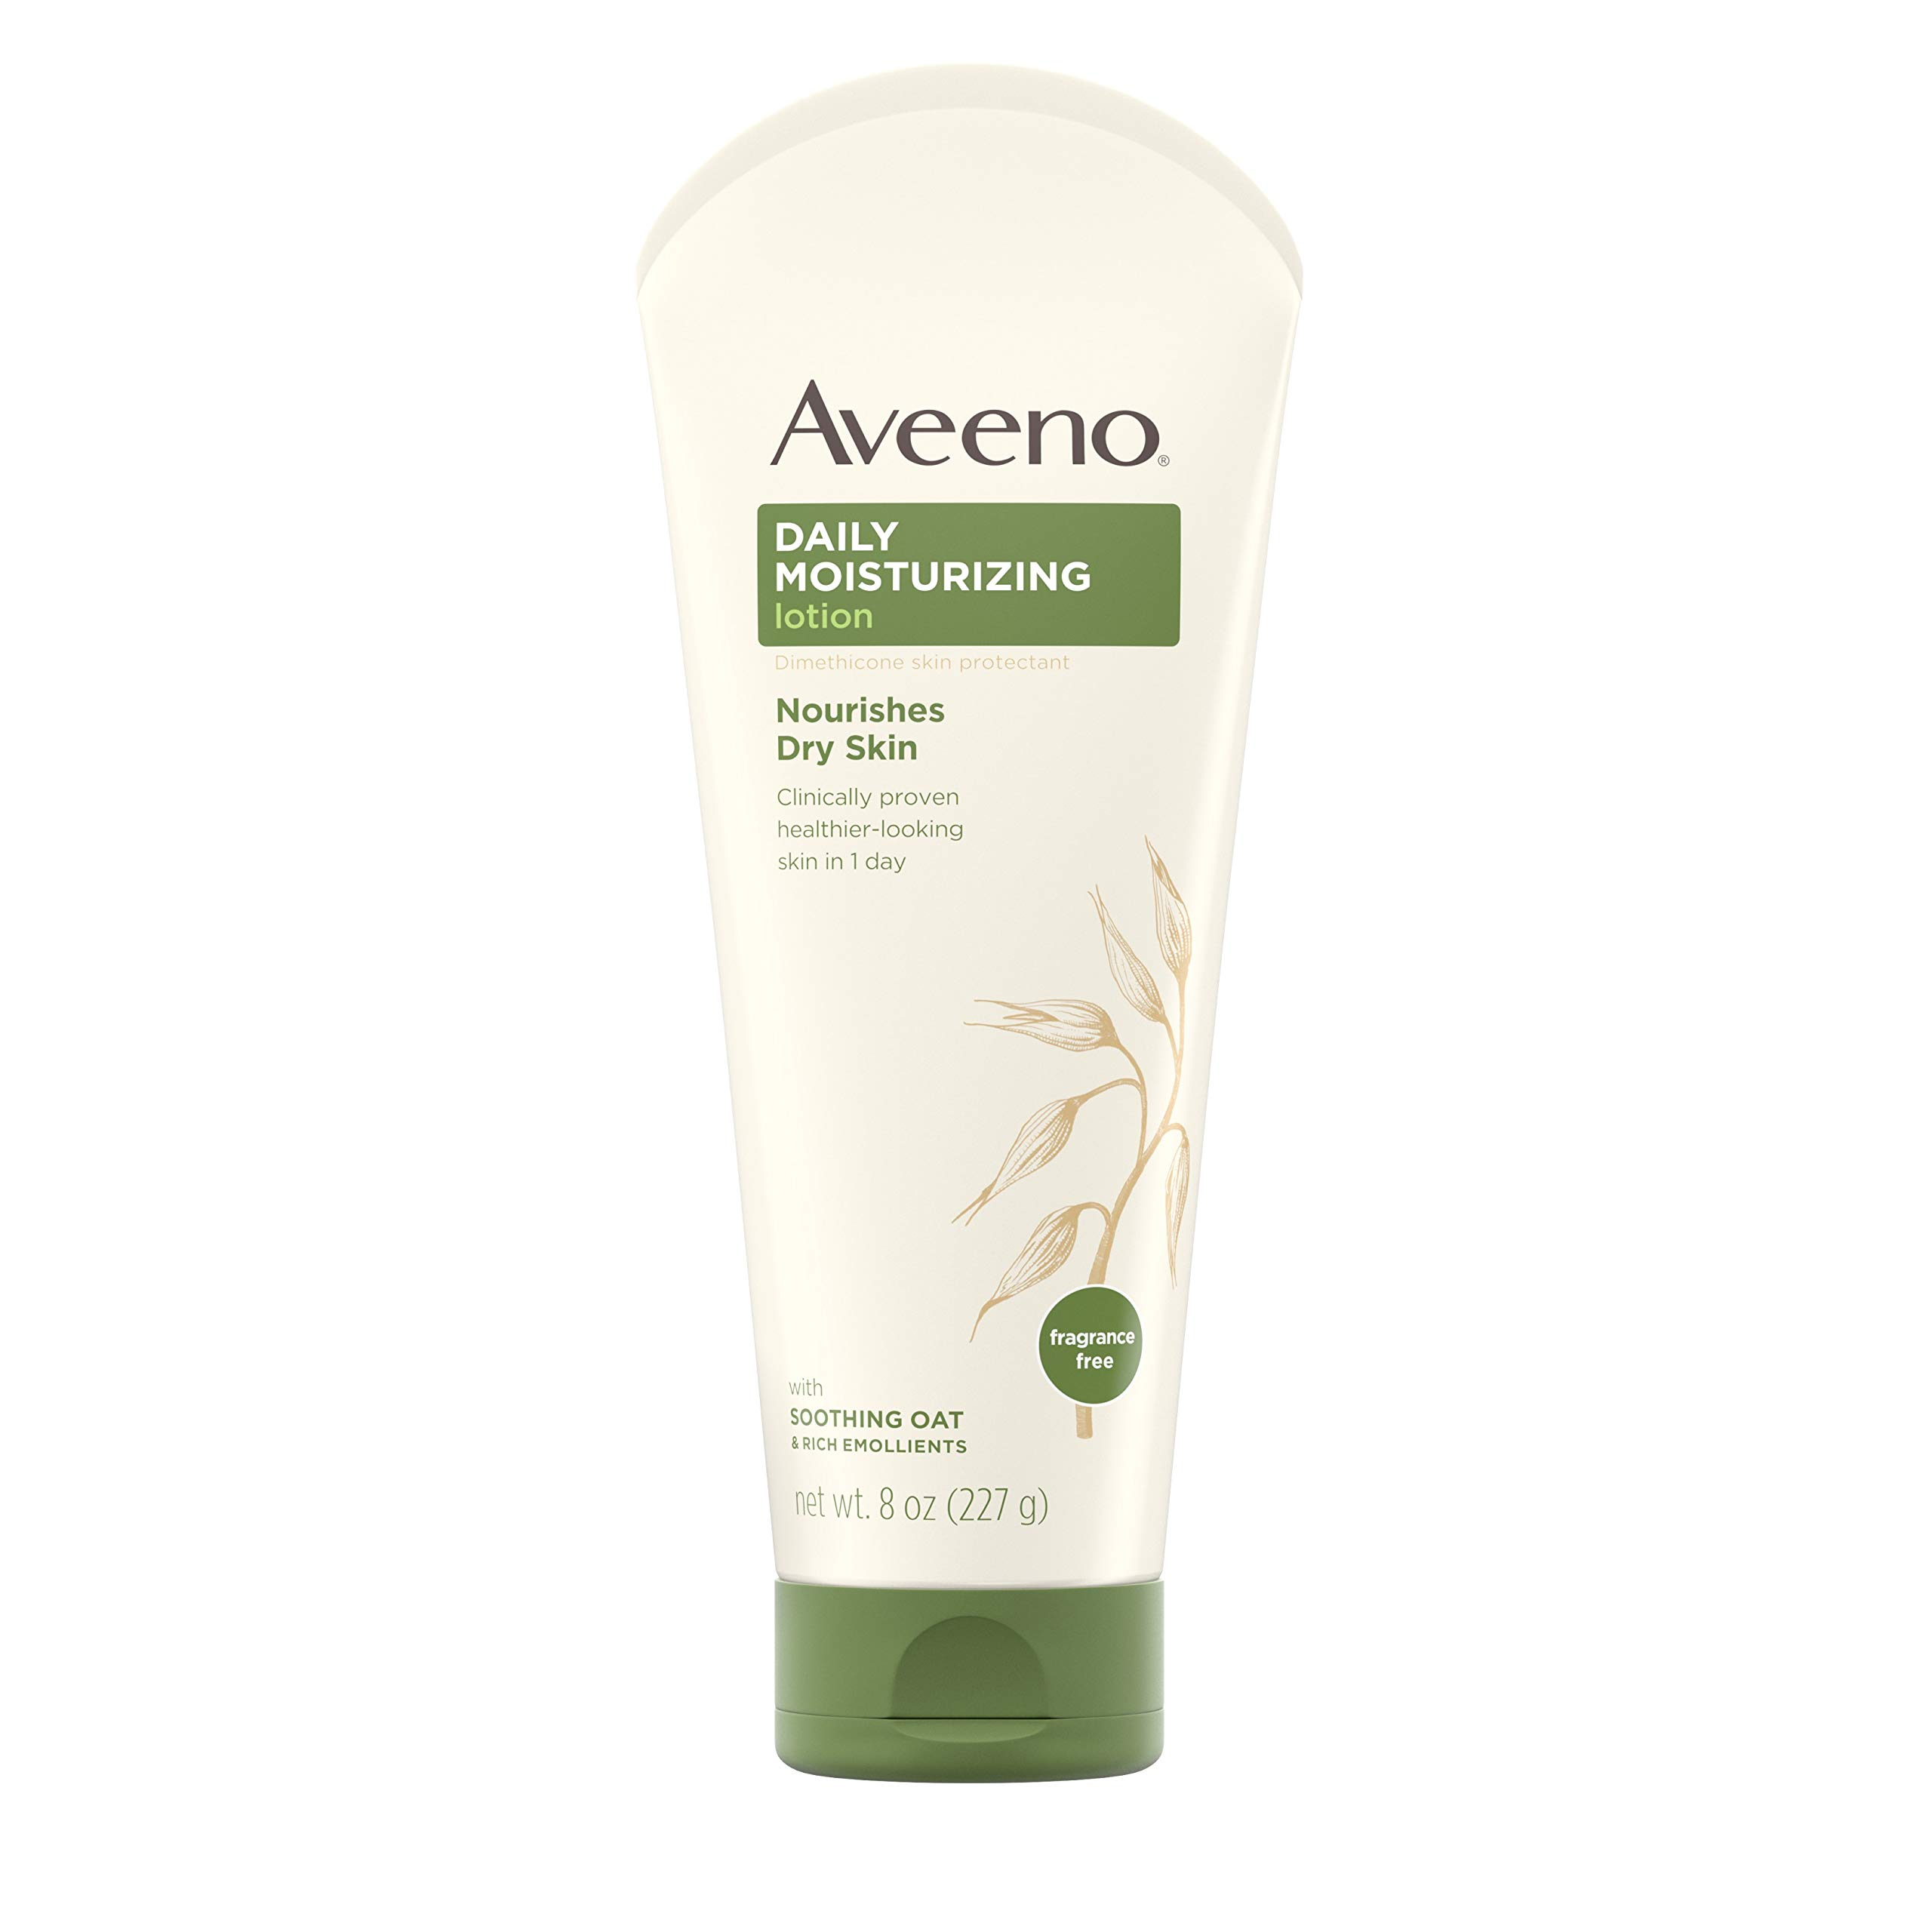 Aveeno Daily Moisturizing Body Lotion with Soothing Oat and Rich Emollients to Nourish Dry Skin, Fragrance-Free, 8 fl. oz